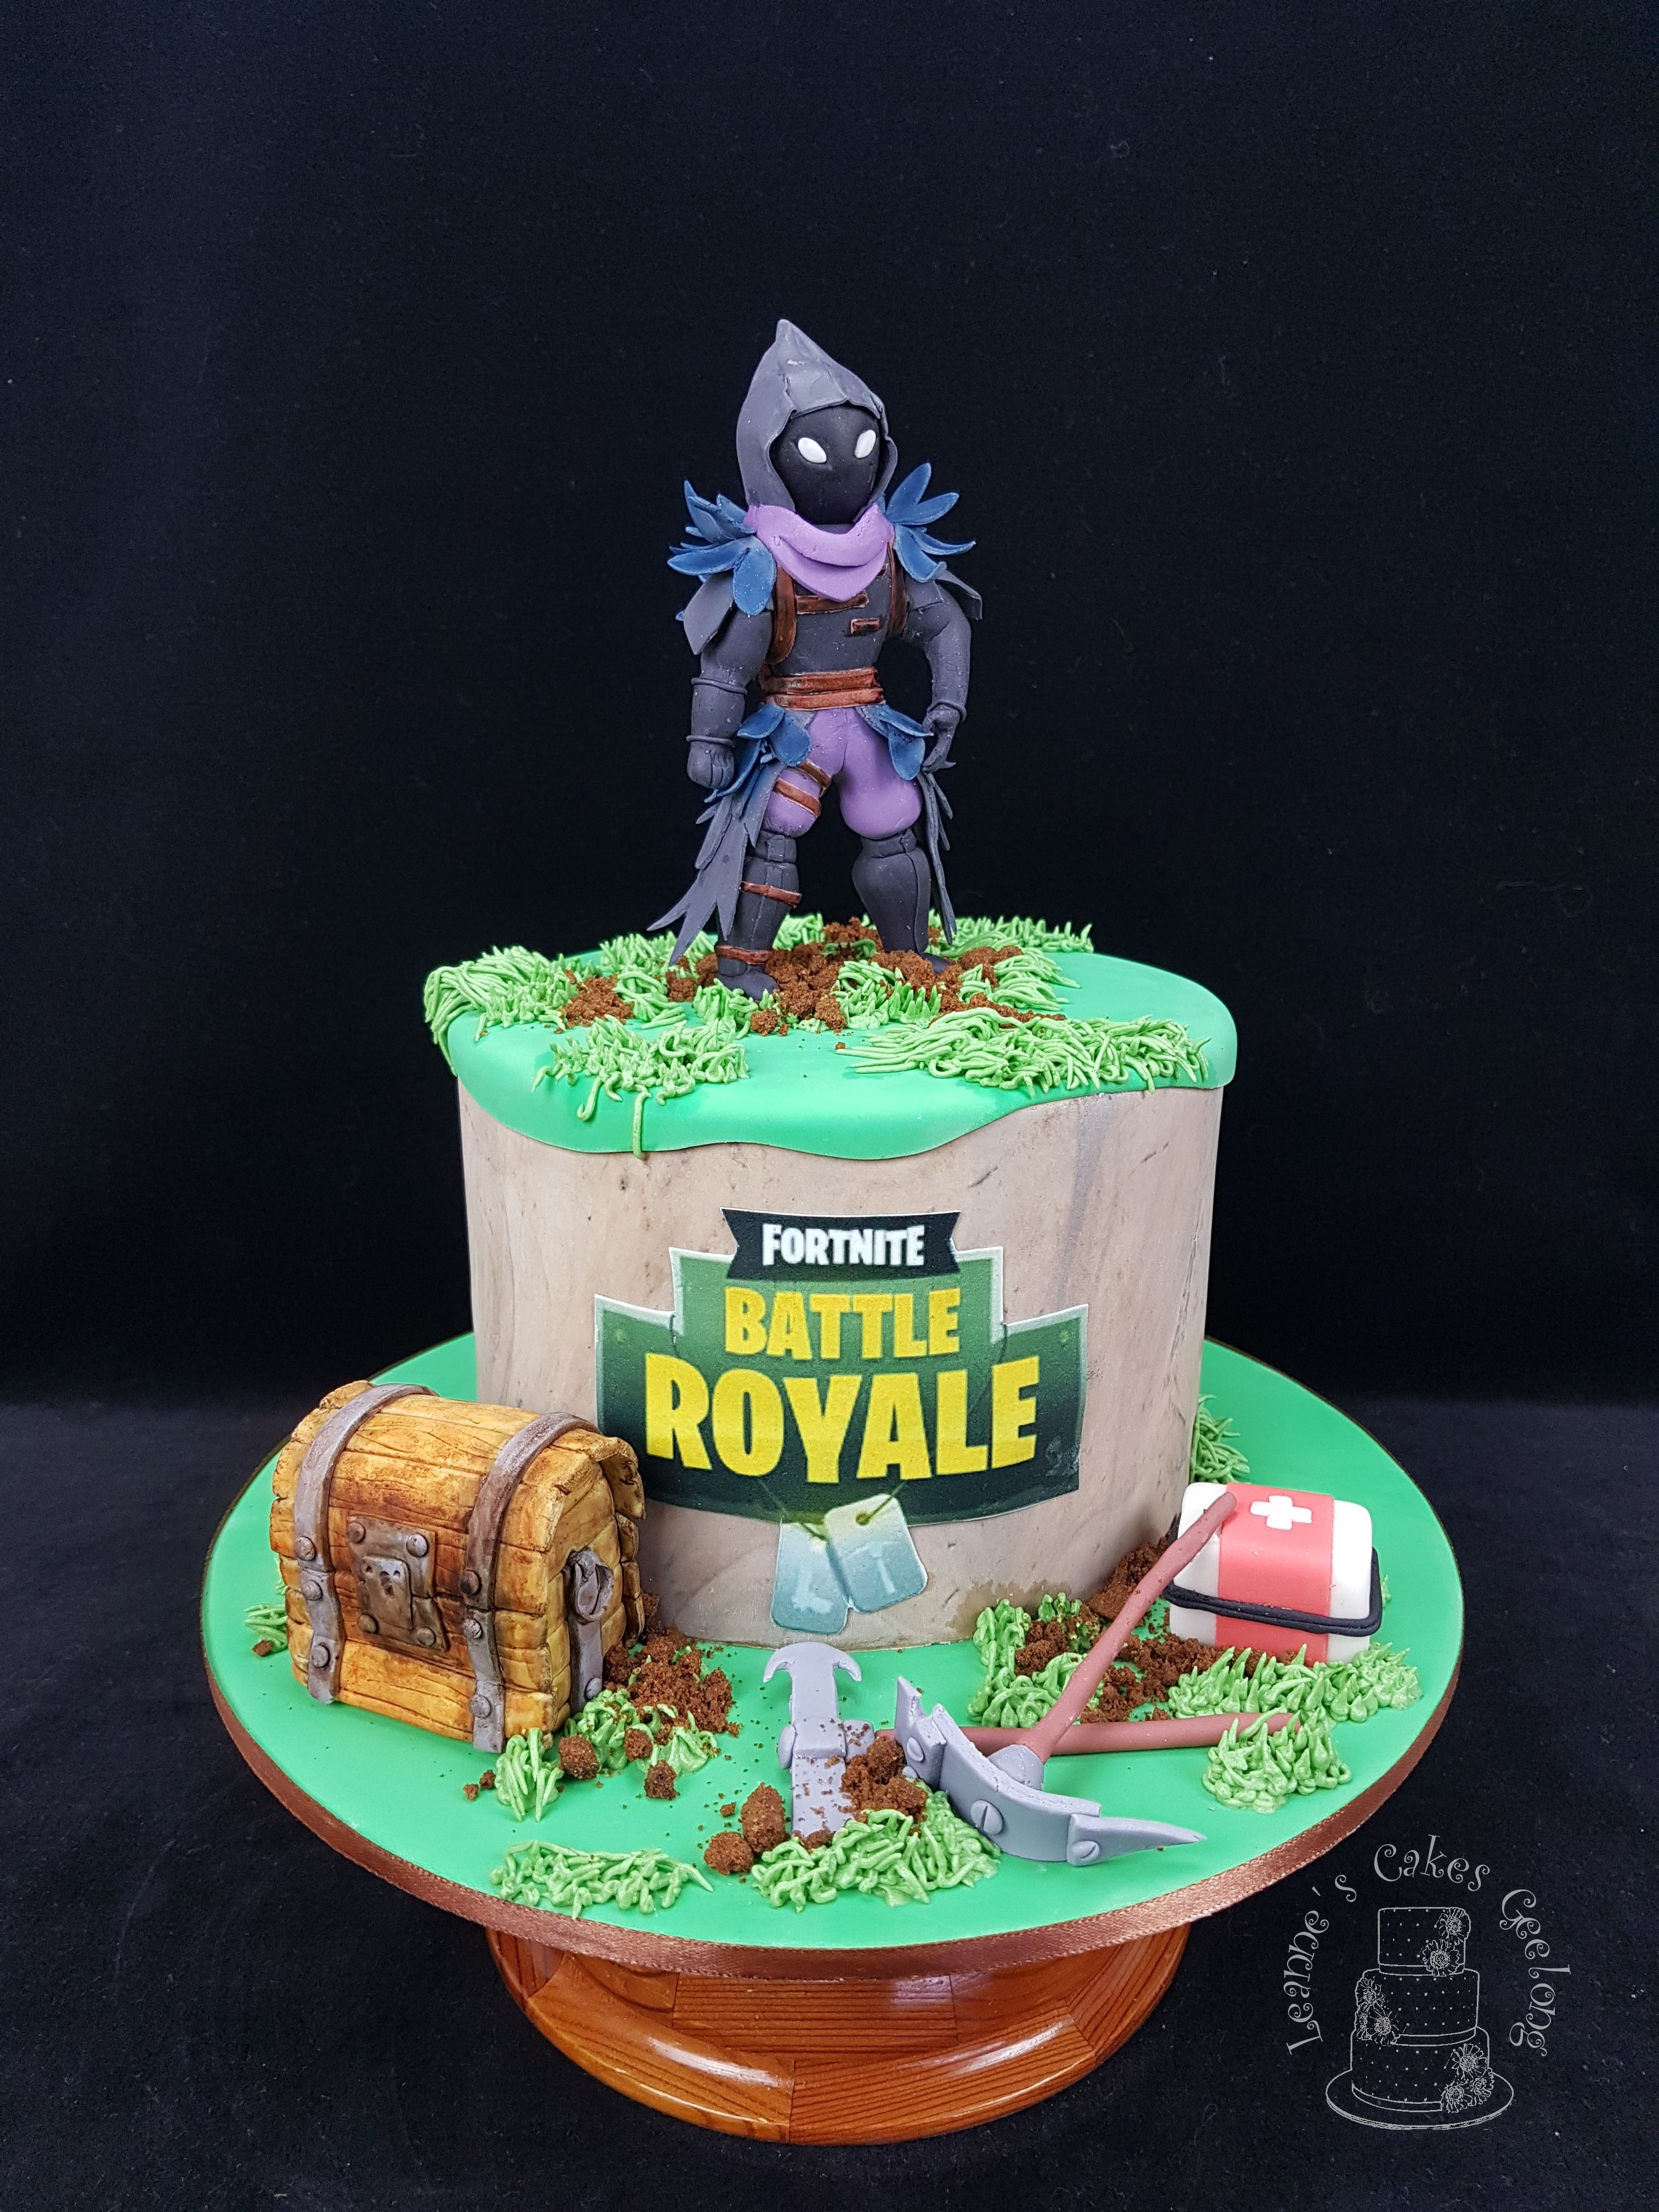 Fortnite Battle Royale The Brief For This Little Cake Was To Have